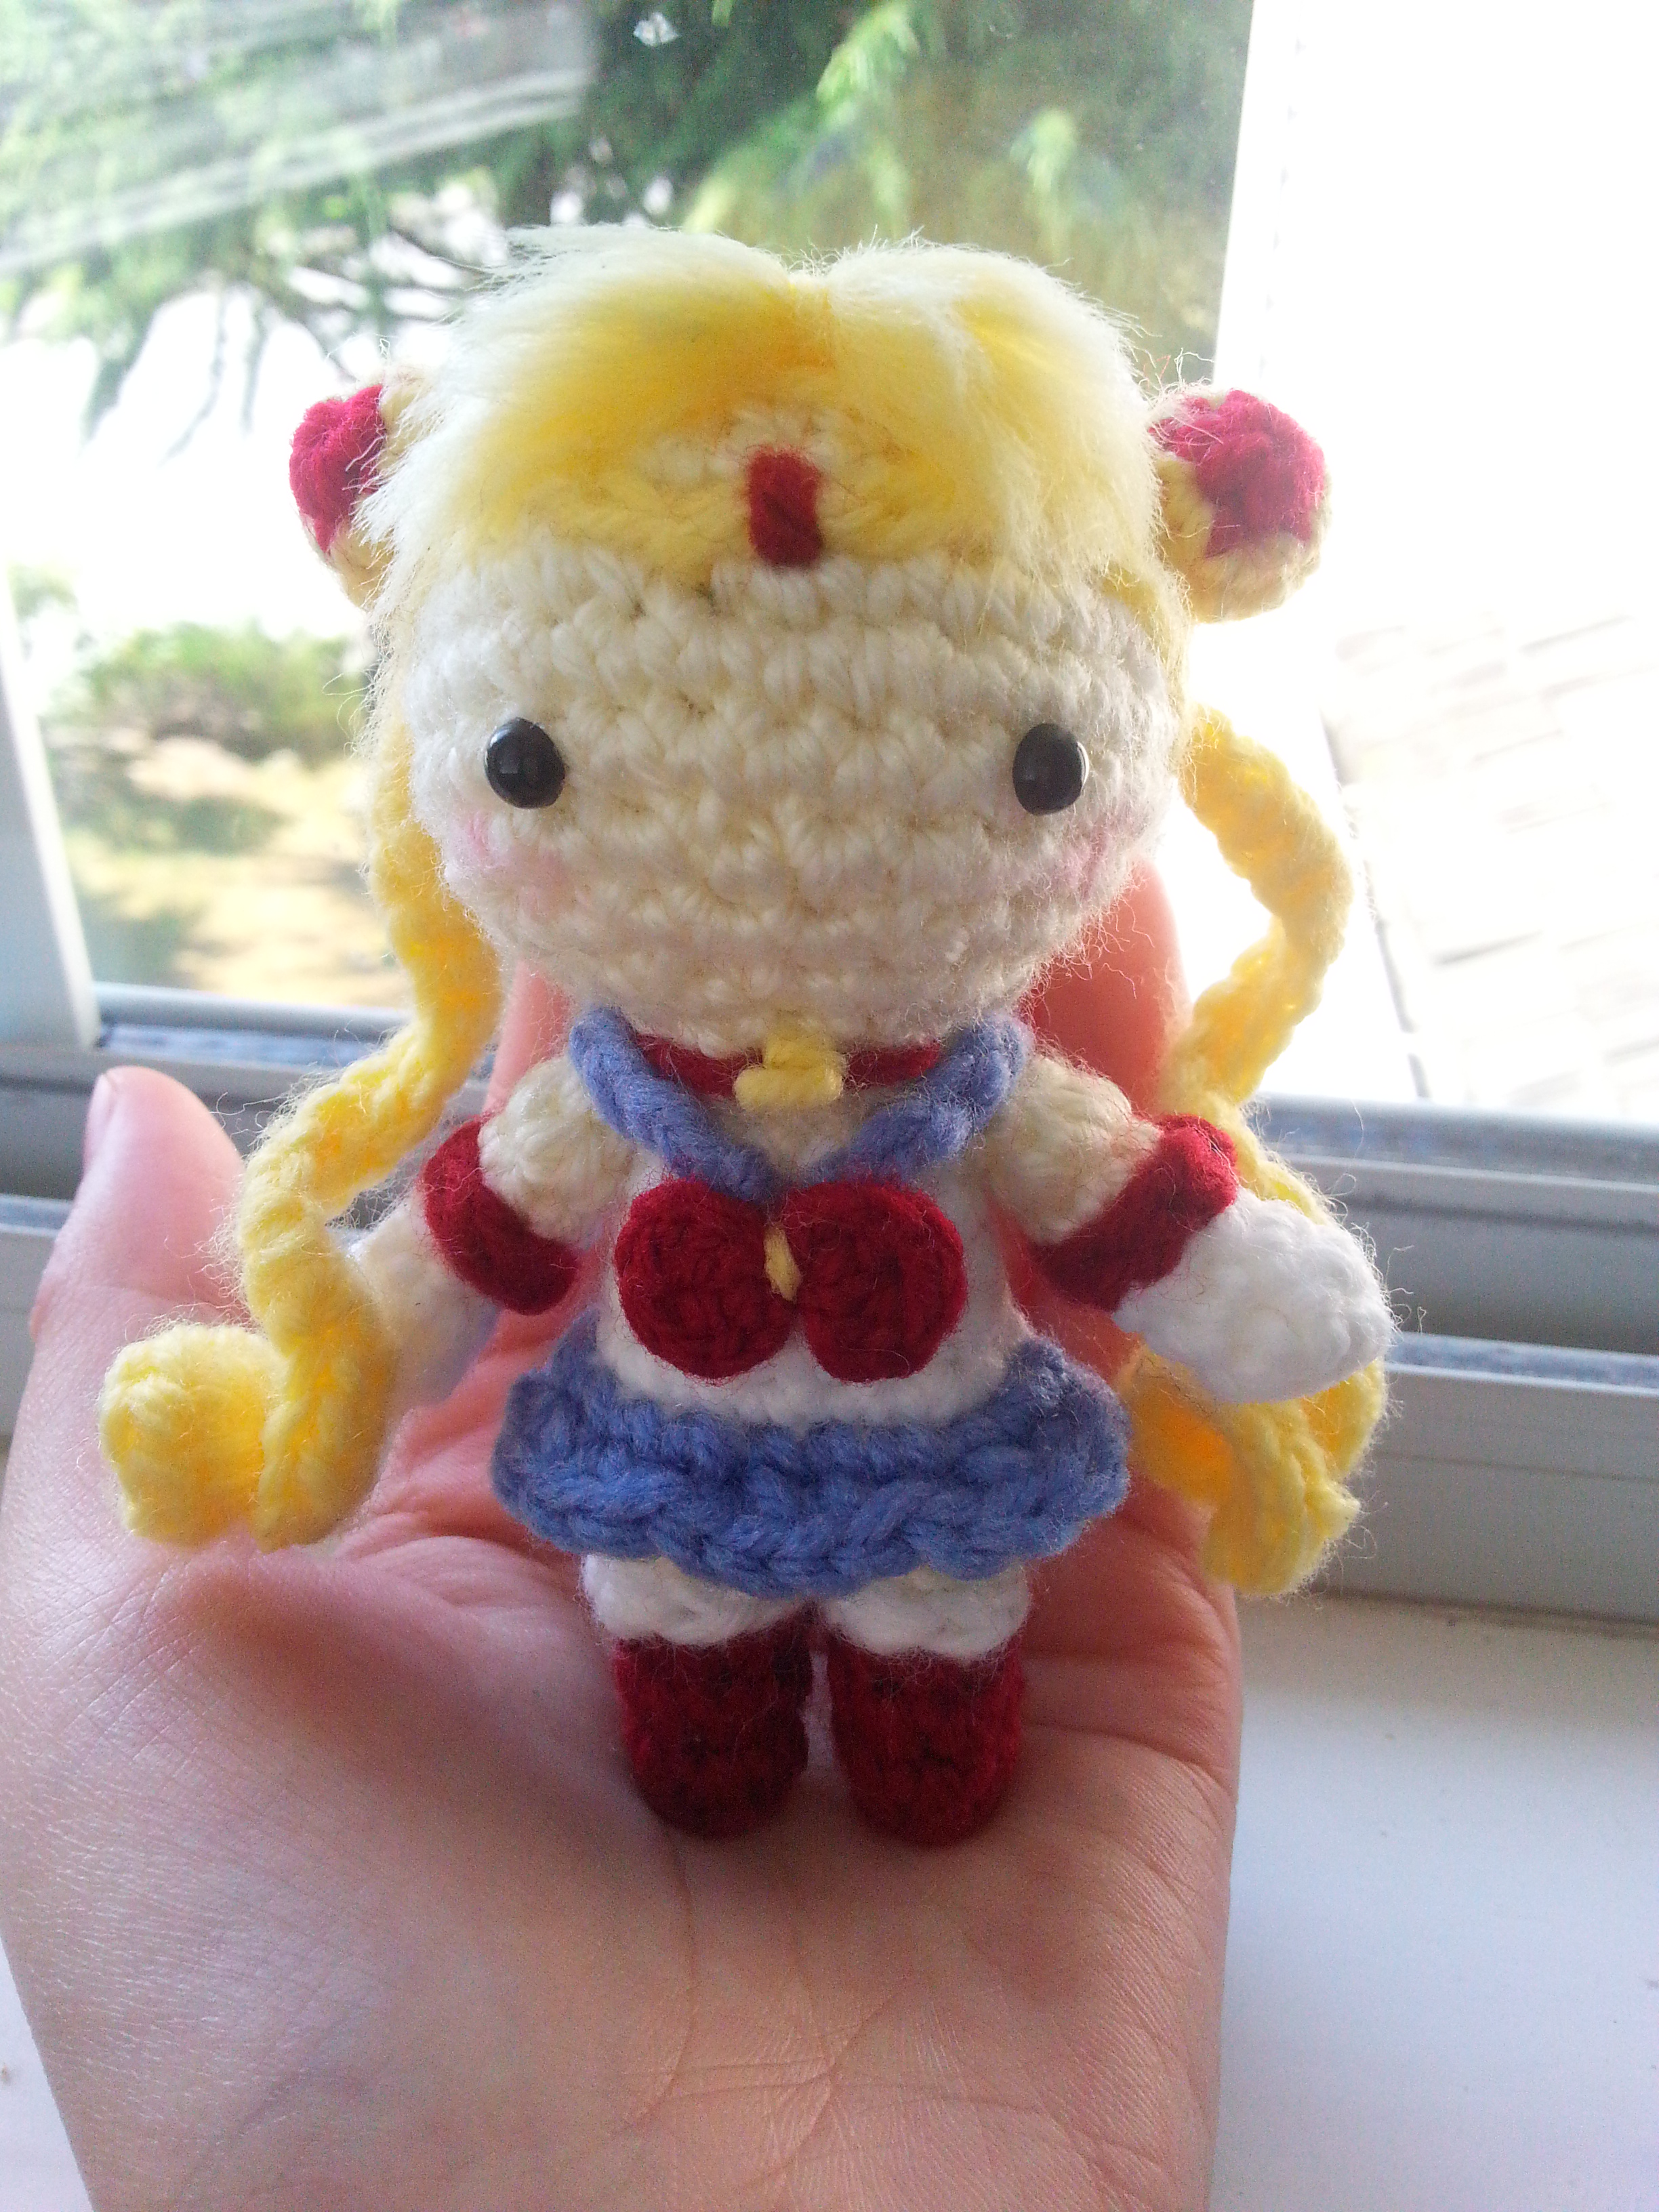 Amigurumi Sailor Moon : sailor moon amigurumi ? aringurumi ? Online Store Powered ...